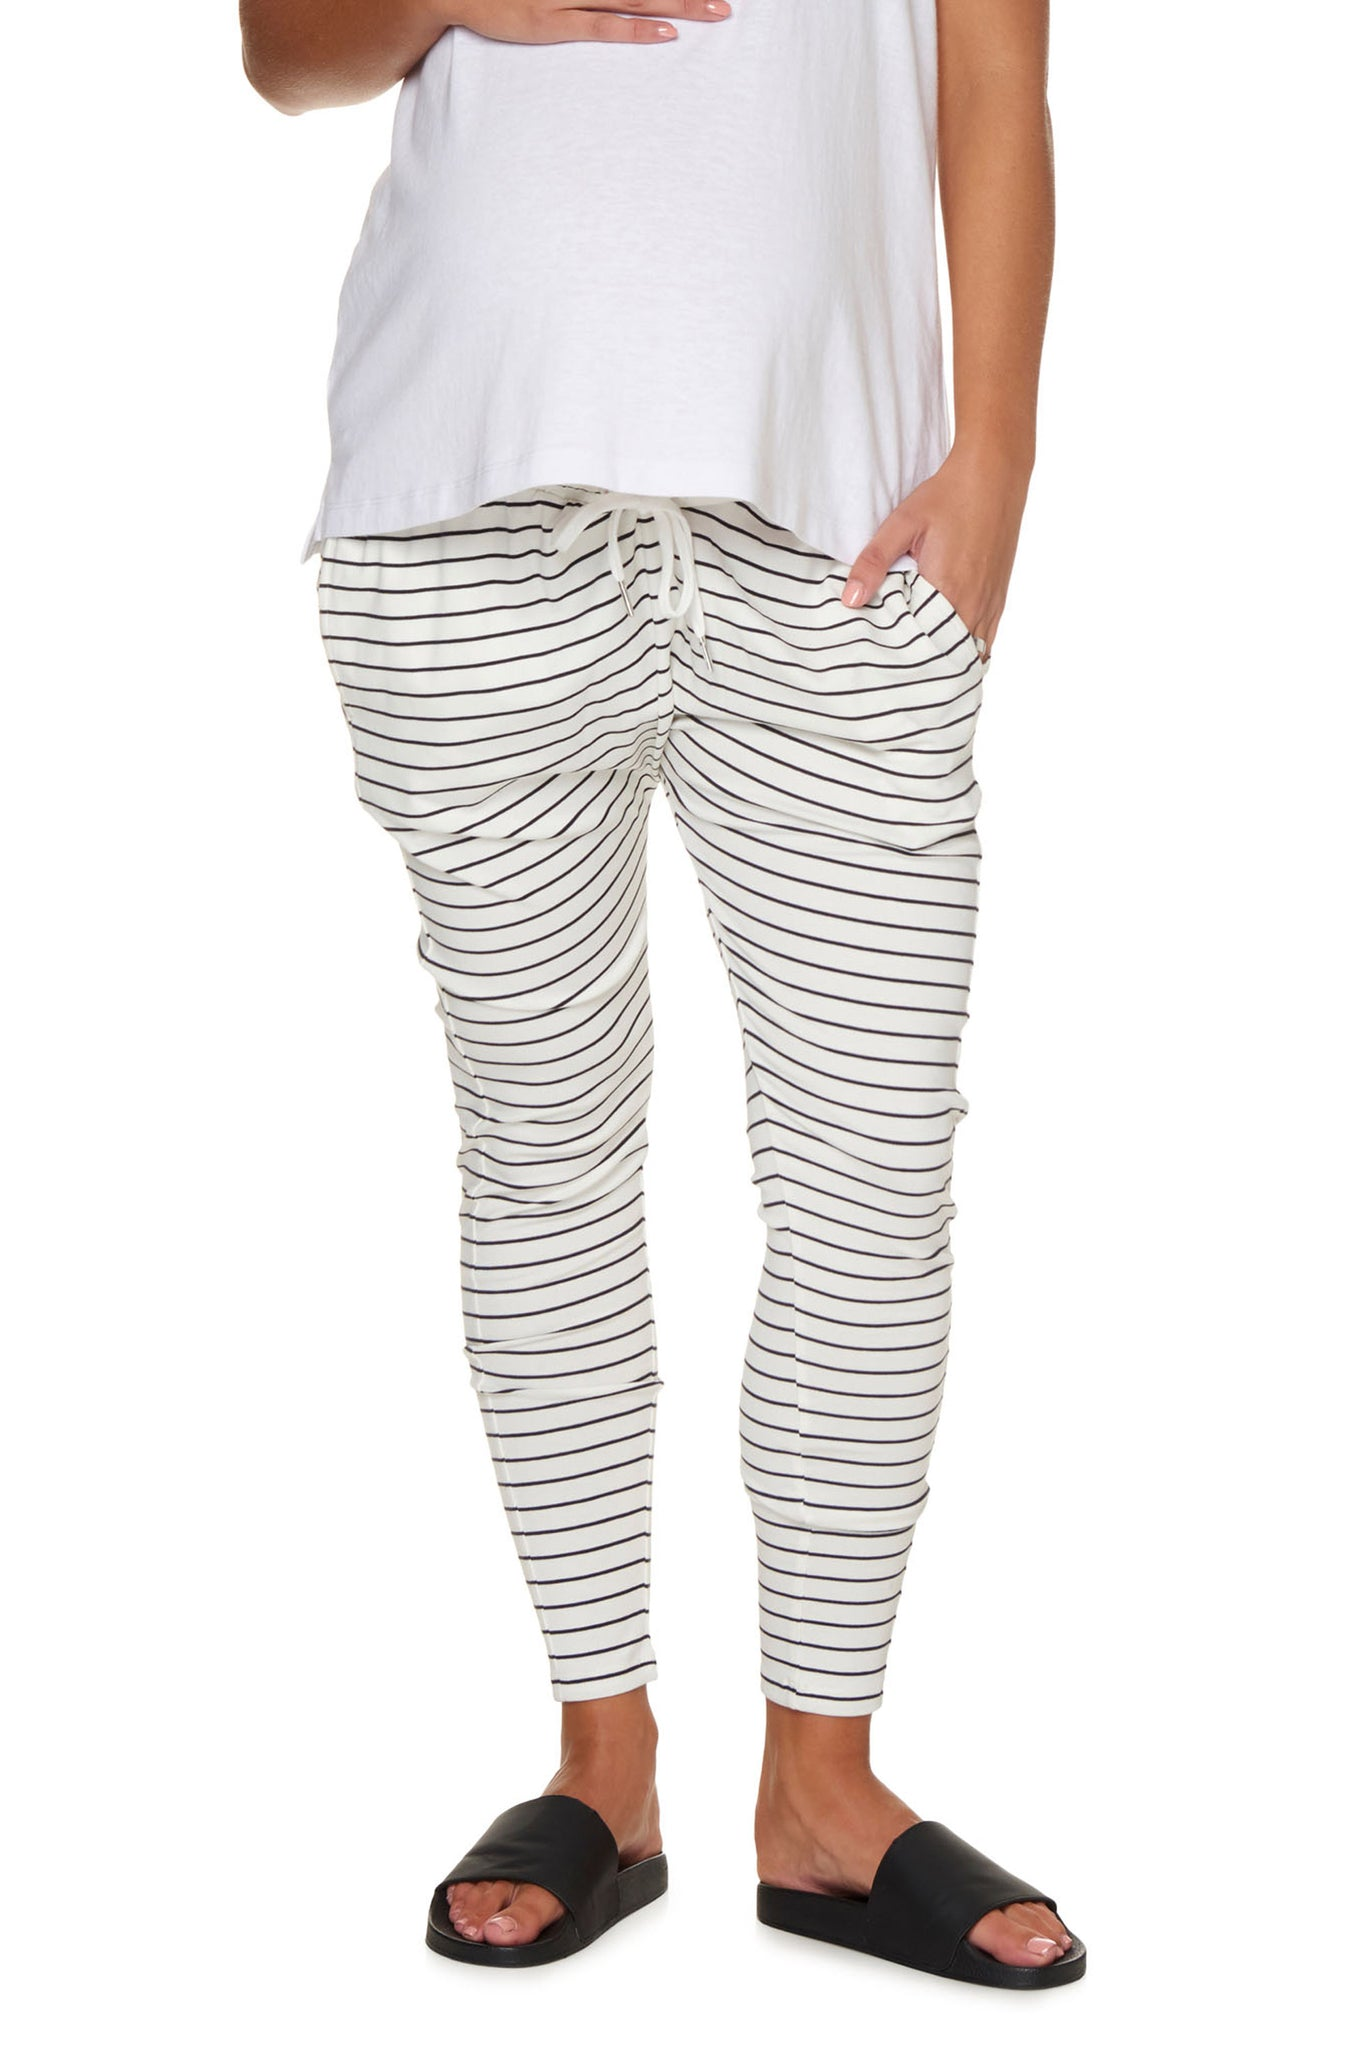 Maternity Pants for Summer in White Stripe Image 1